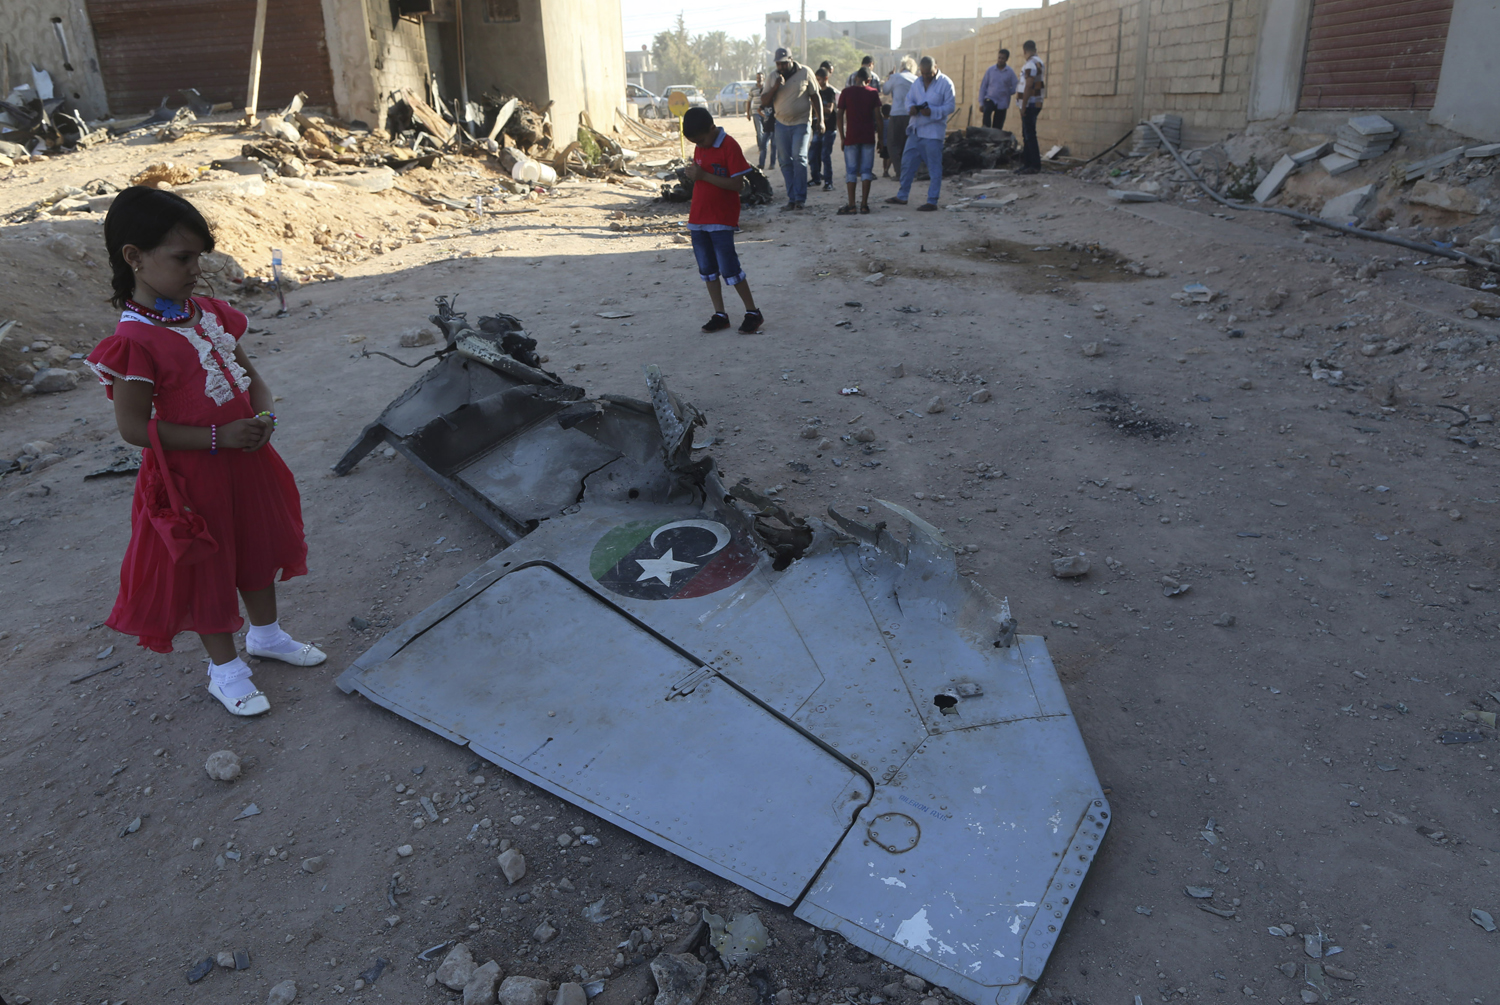 A Libyan girl stands next to the wreckage of a government MiG warplane that crashed during clashes in Benghazi, Libya, on July 29, 2014